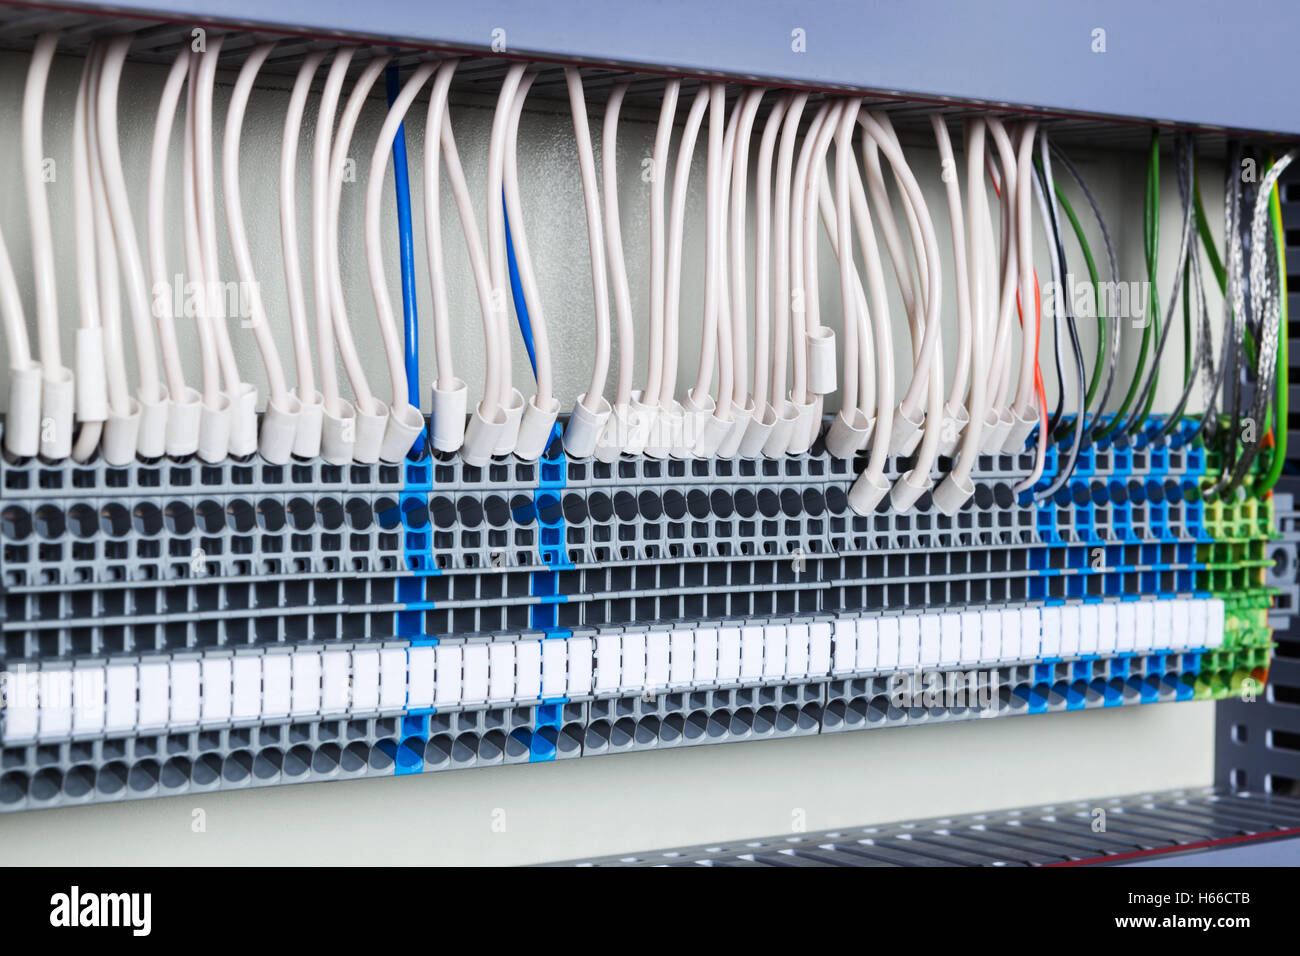 Stupendous Electrical Wiring In The Control Cabinet Stock Photo 124302315 Alamy Wiring Digital Resources Tziciprontobusorg